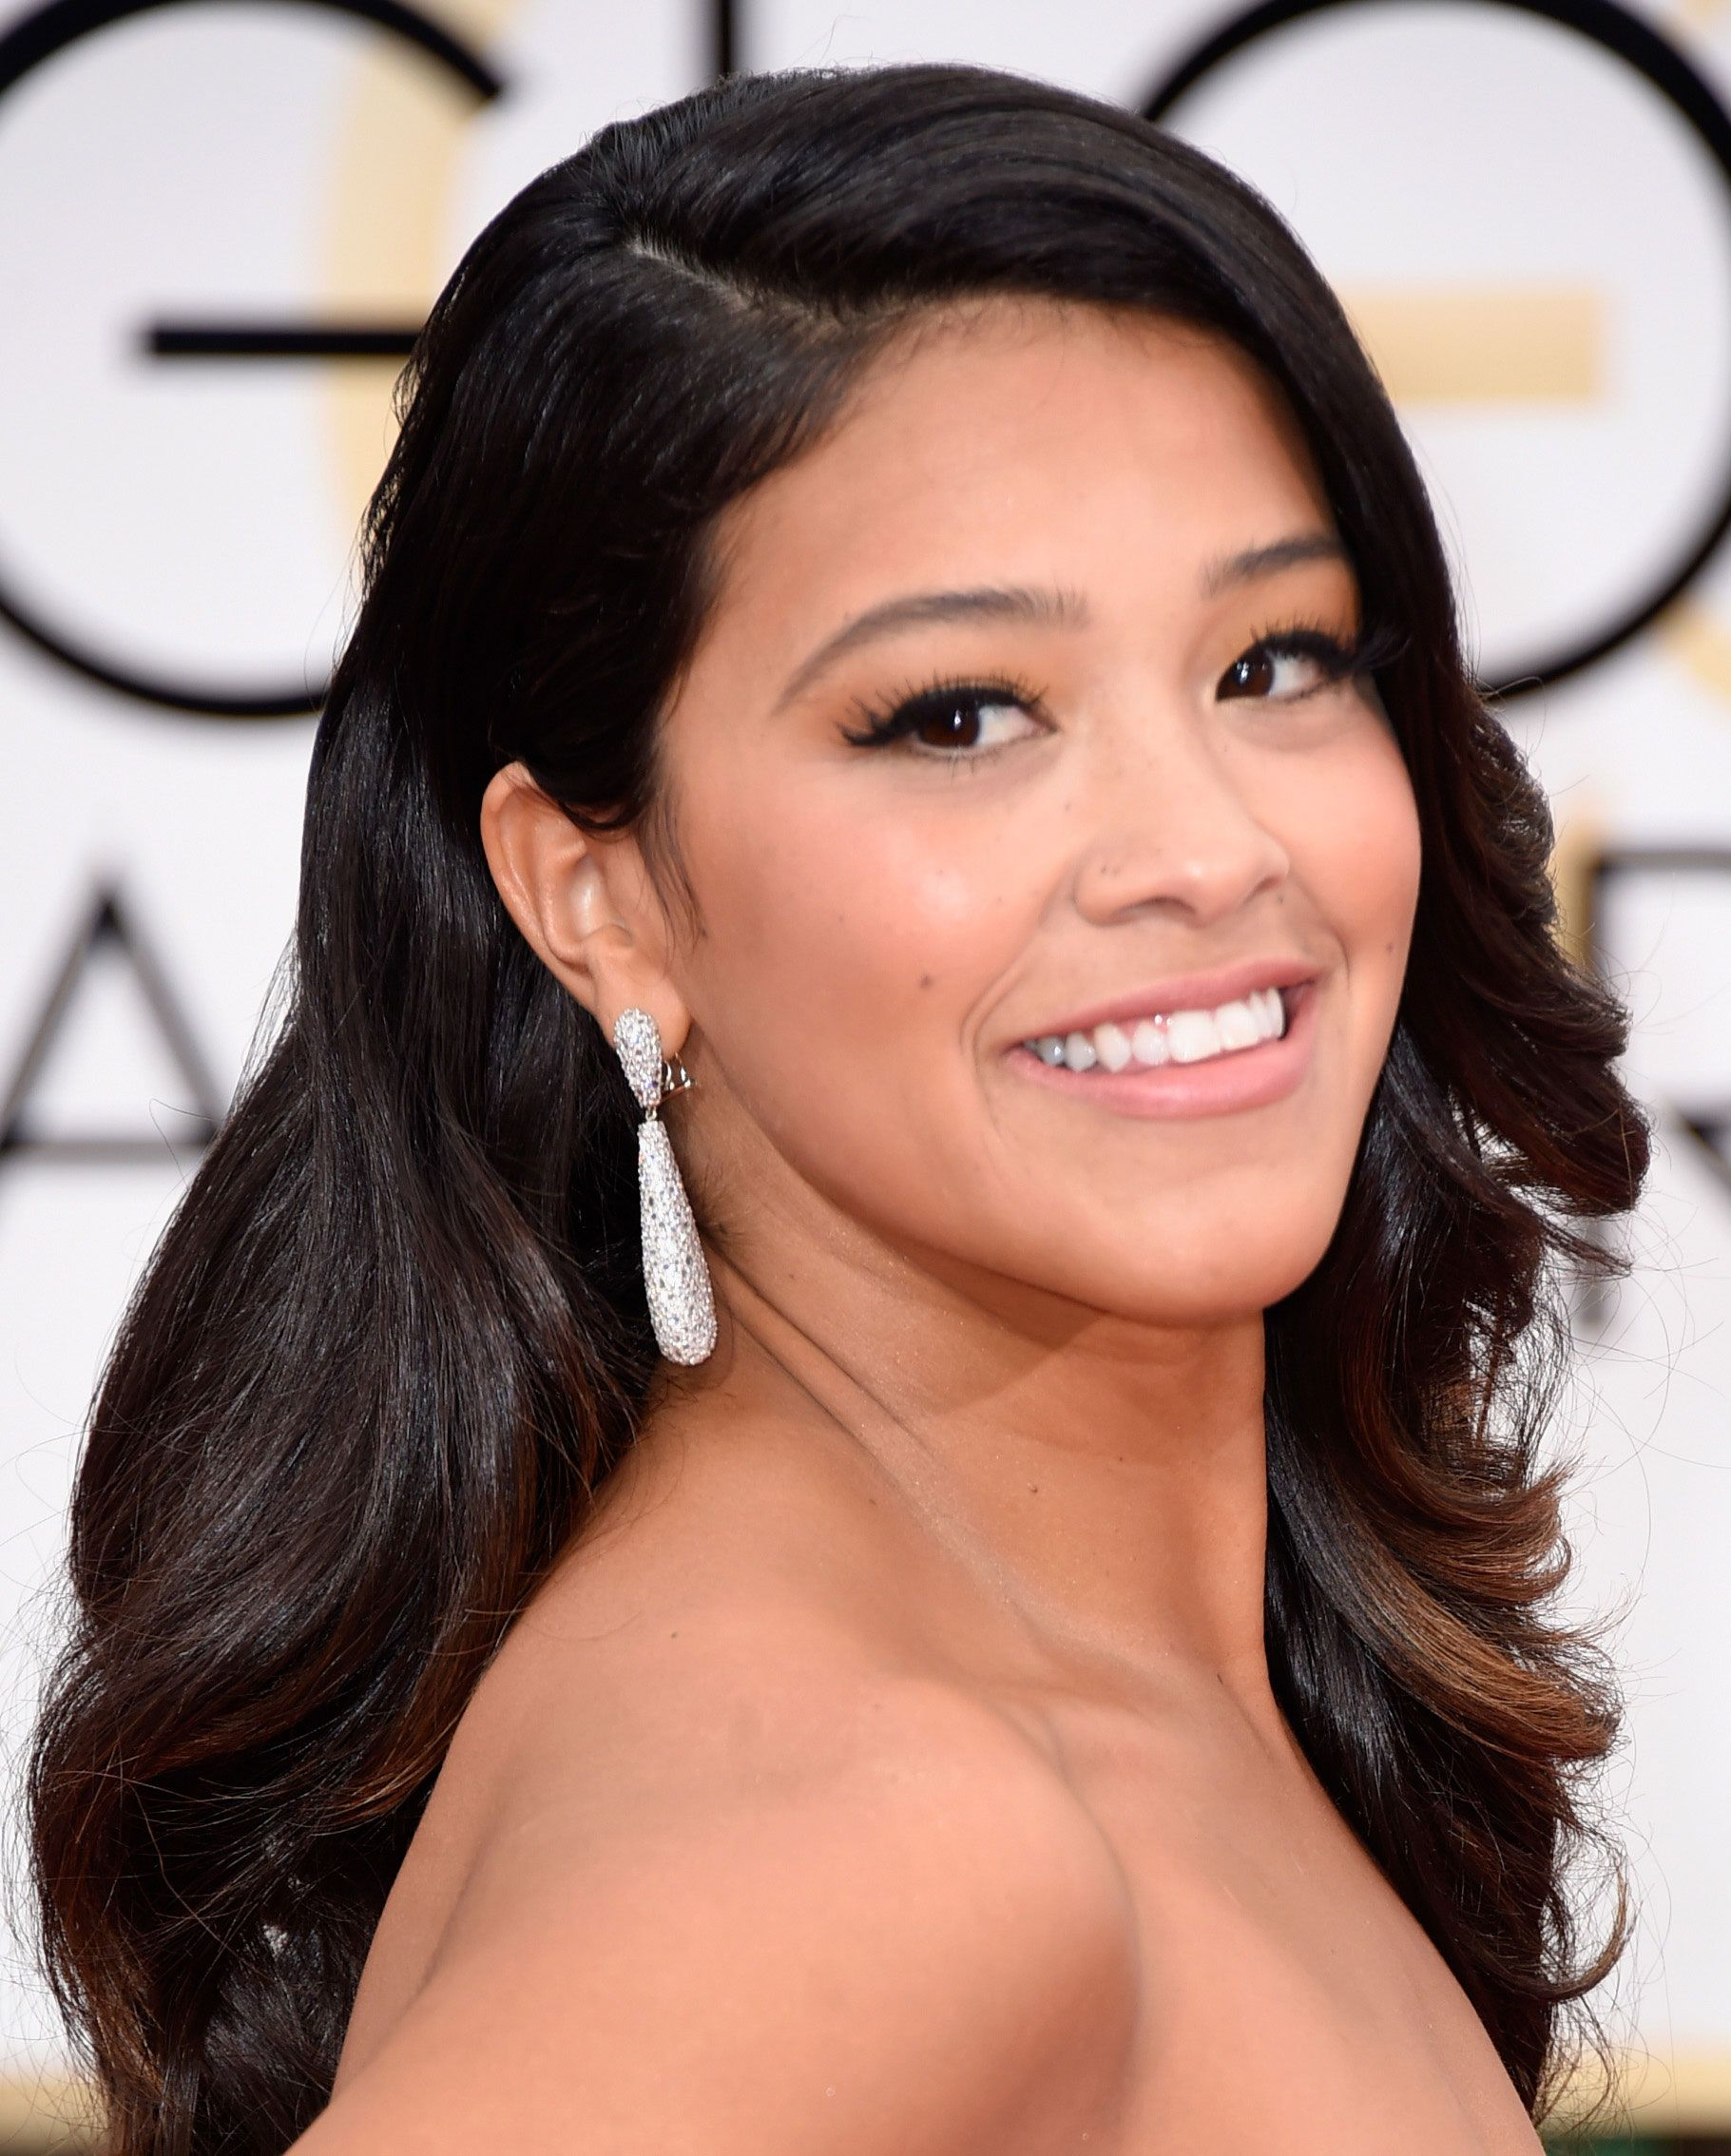 Porn Star Gina Rodriguez Simple showing porn images for porn star gina rodriguez nude porn   www